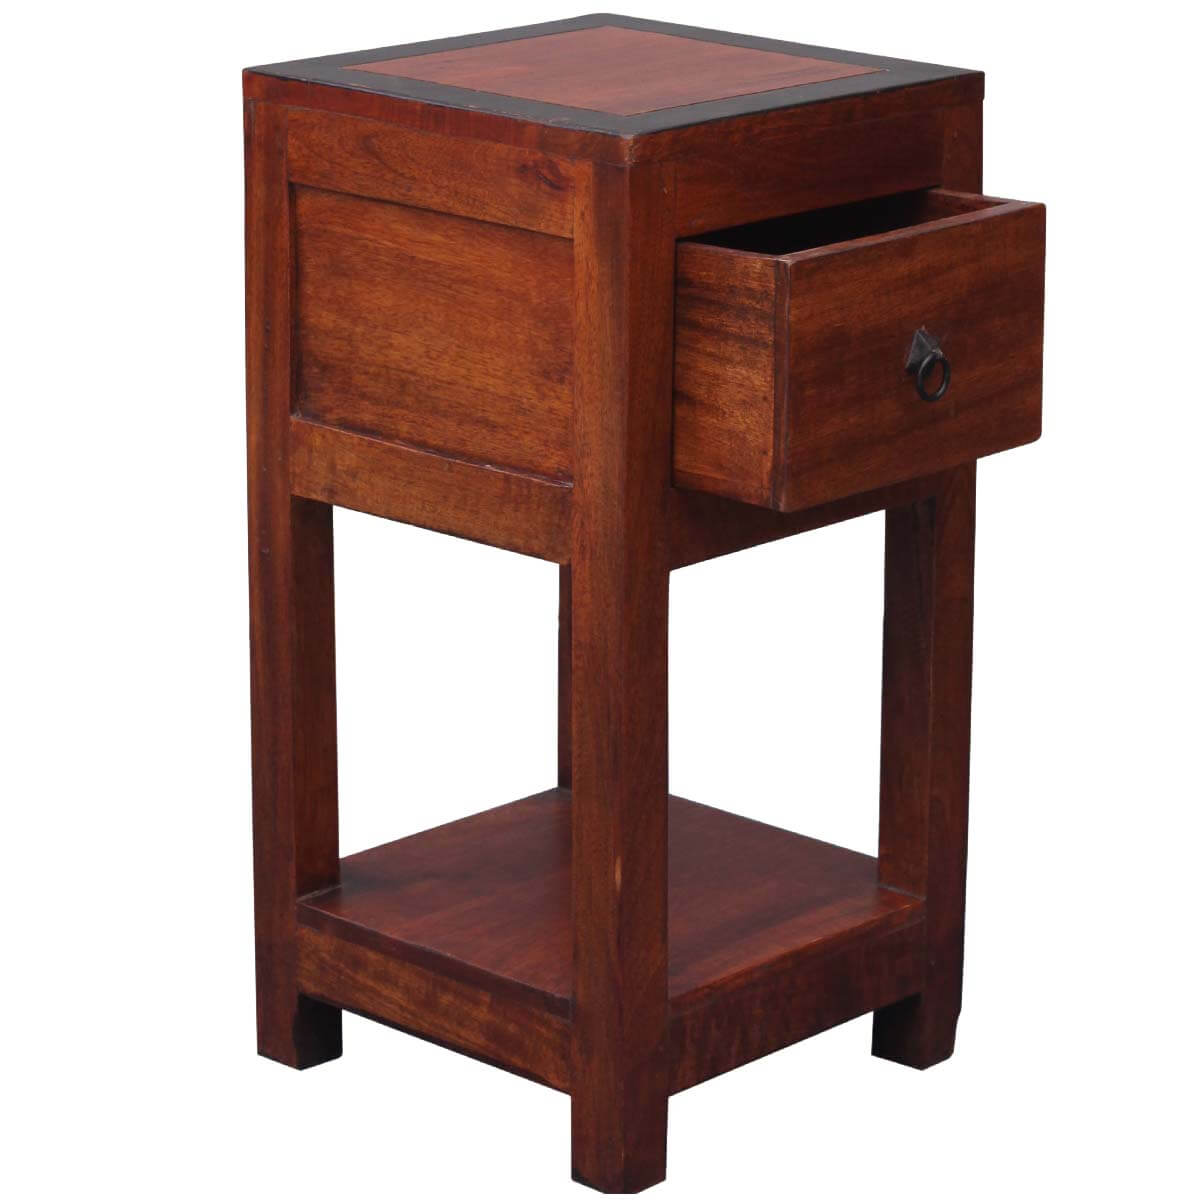 square 2 tier solid wood nightstand end table w drawer. Black Bedroom Furniture Sets. Home Design Ideas